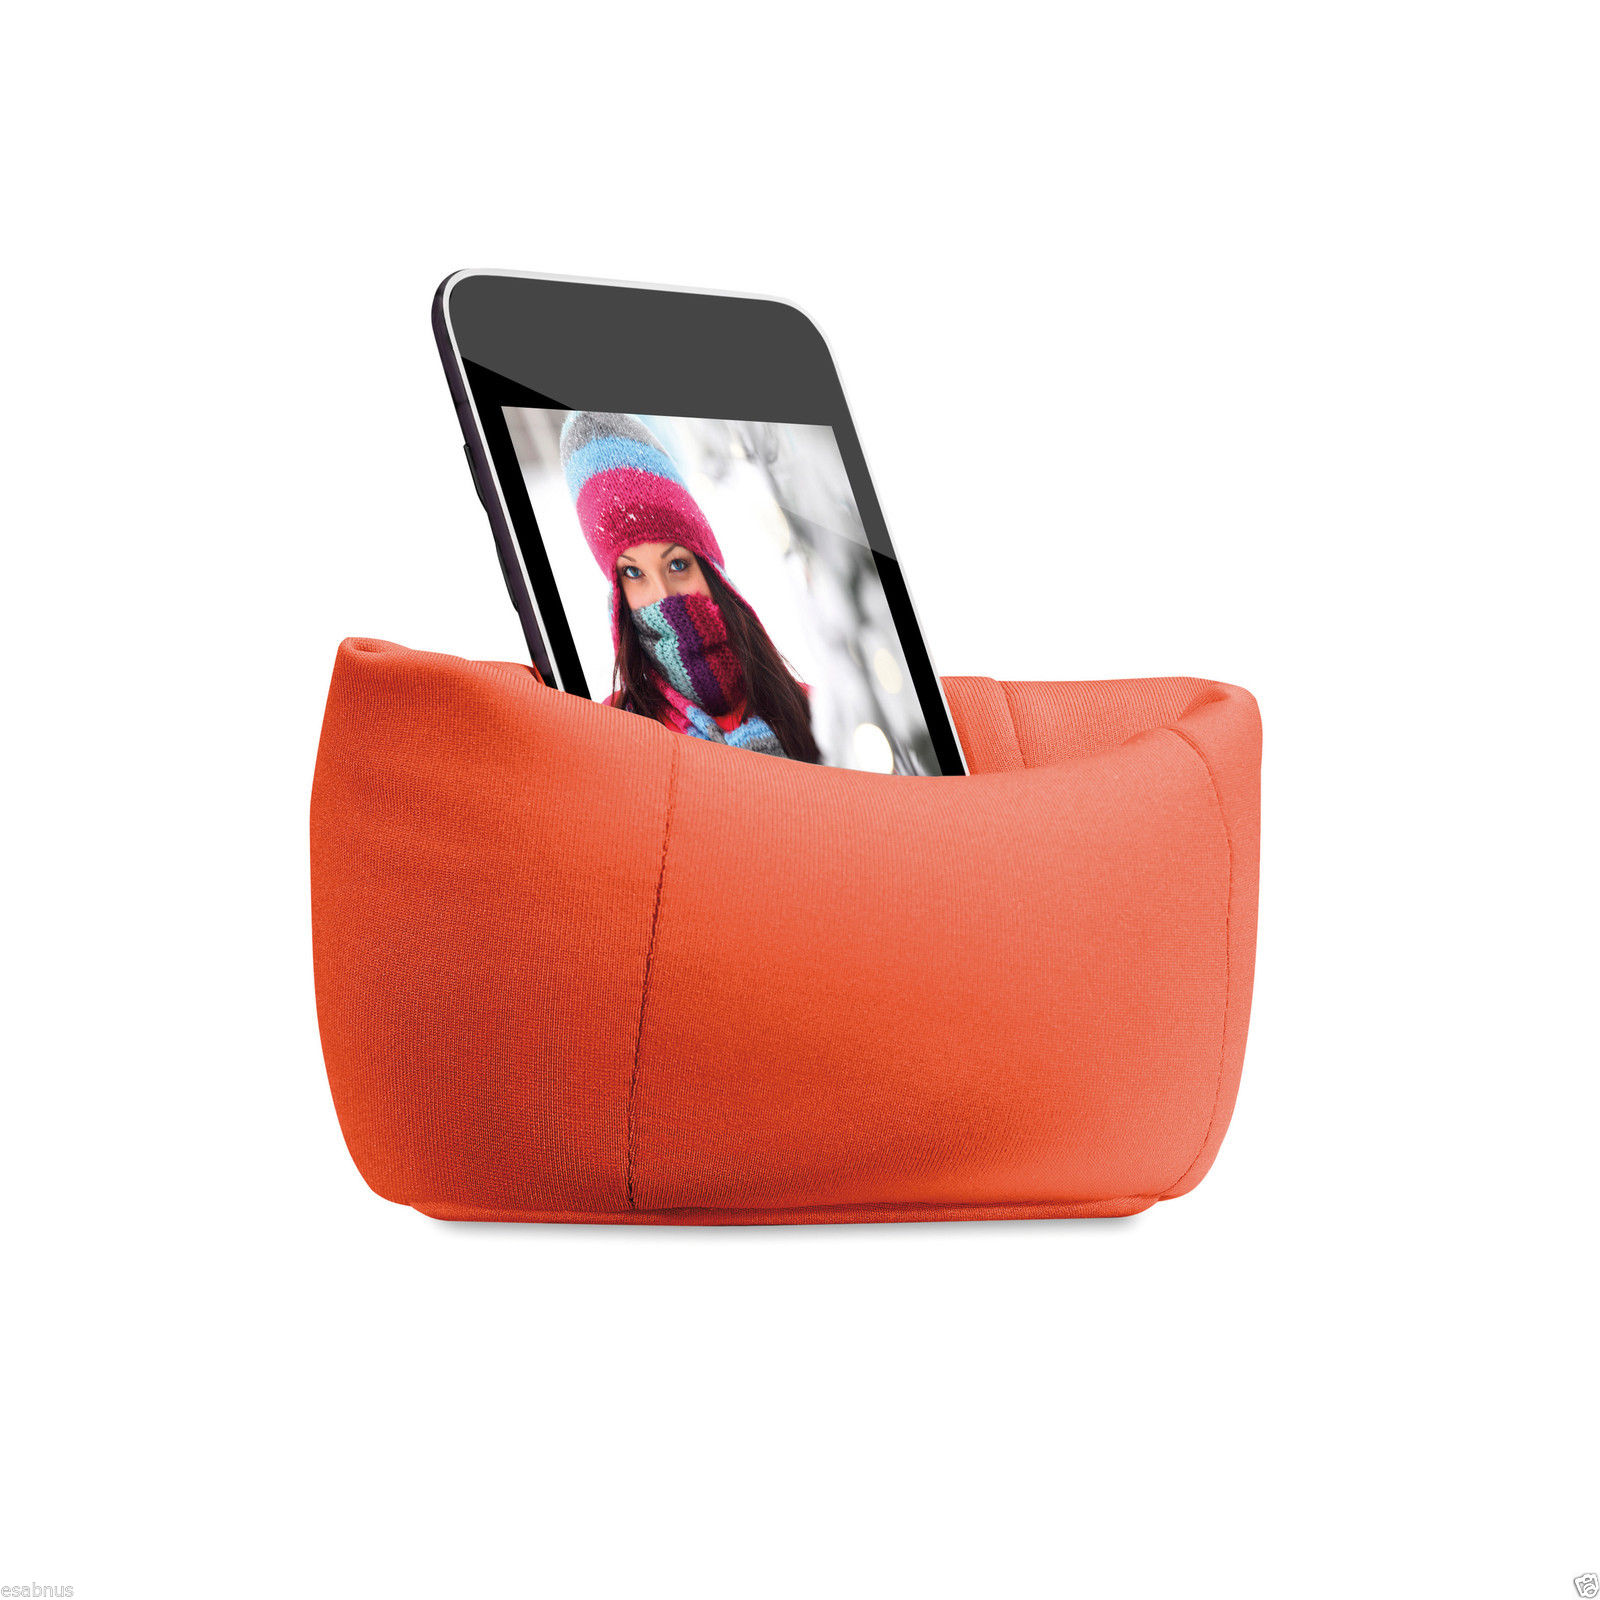 bean bag storage chair folding target sofa mobile phone holder to fit all brands